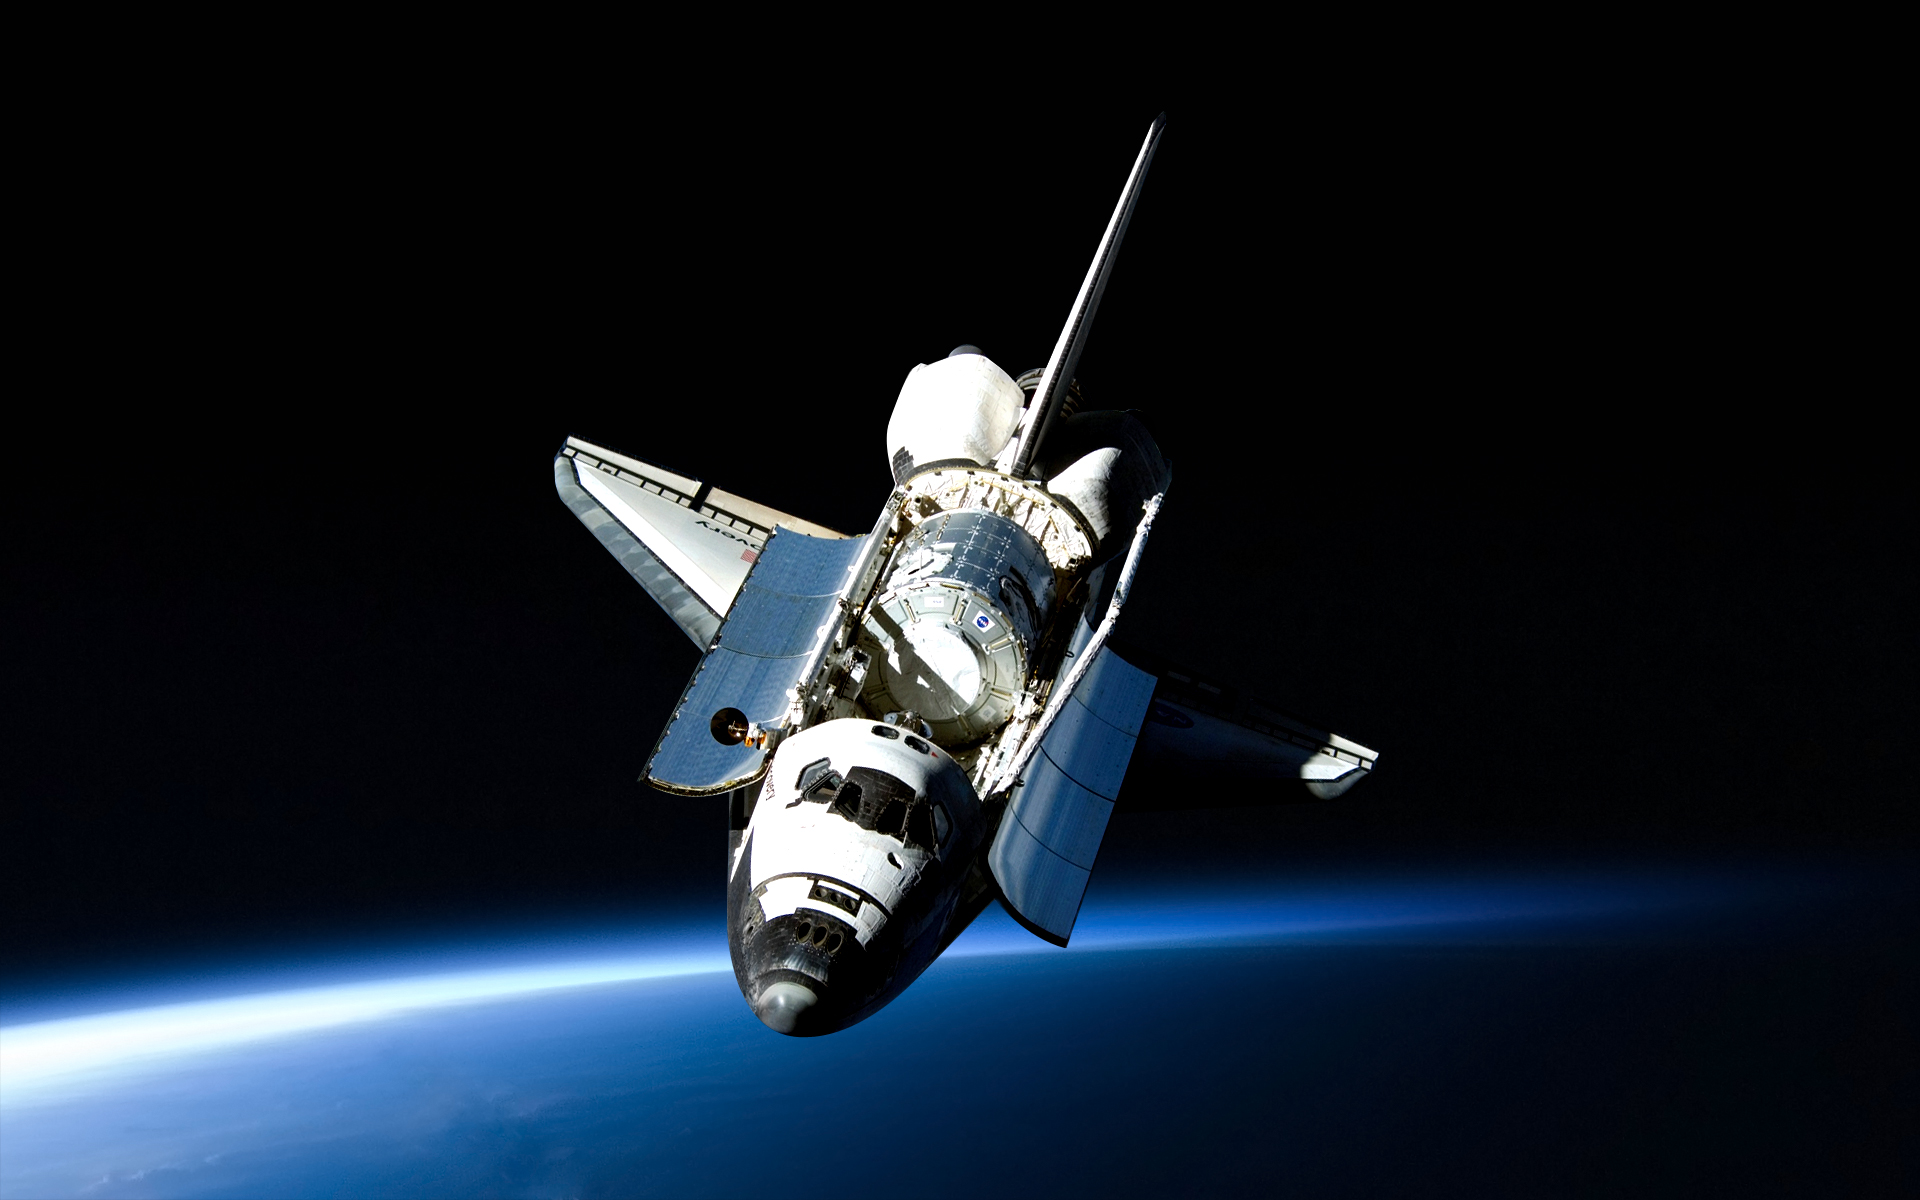 Space Shuttle Discovery posing for a great wallpaper. : space